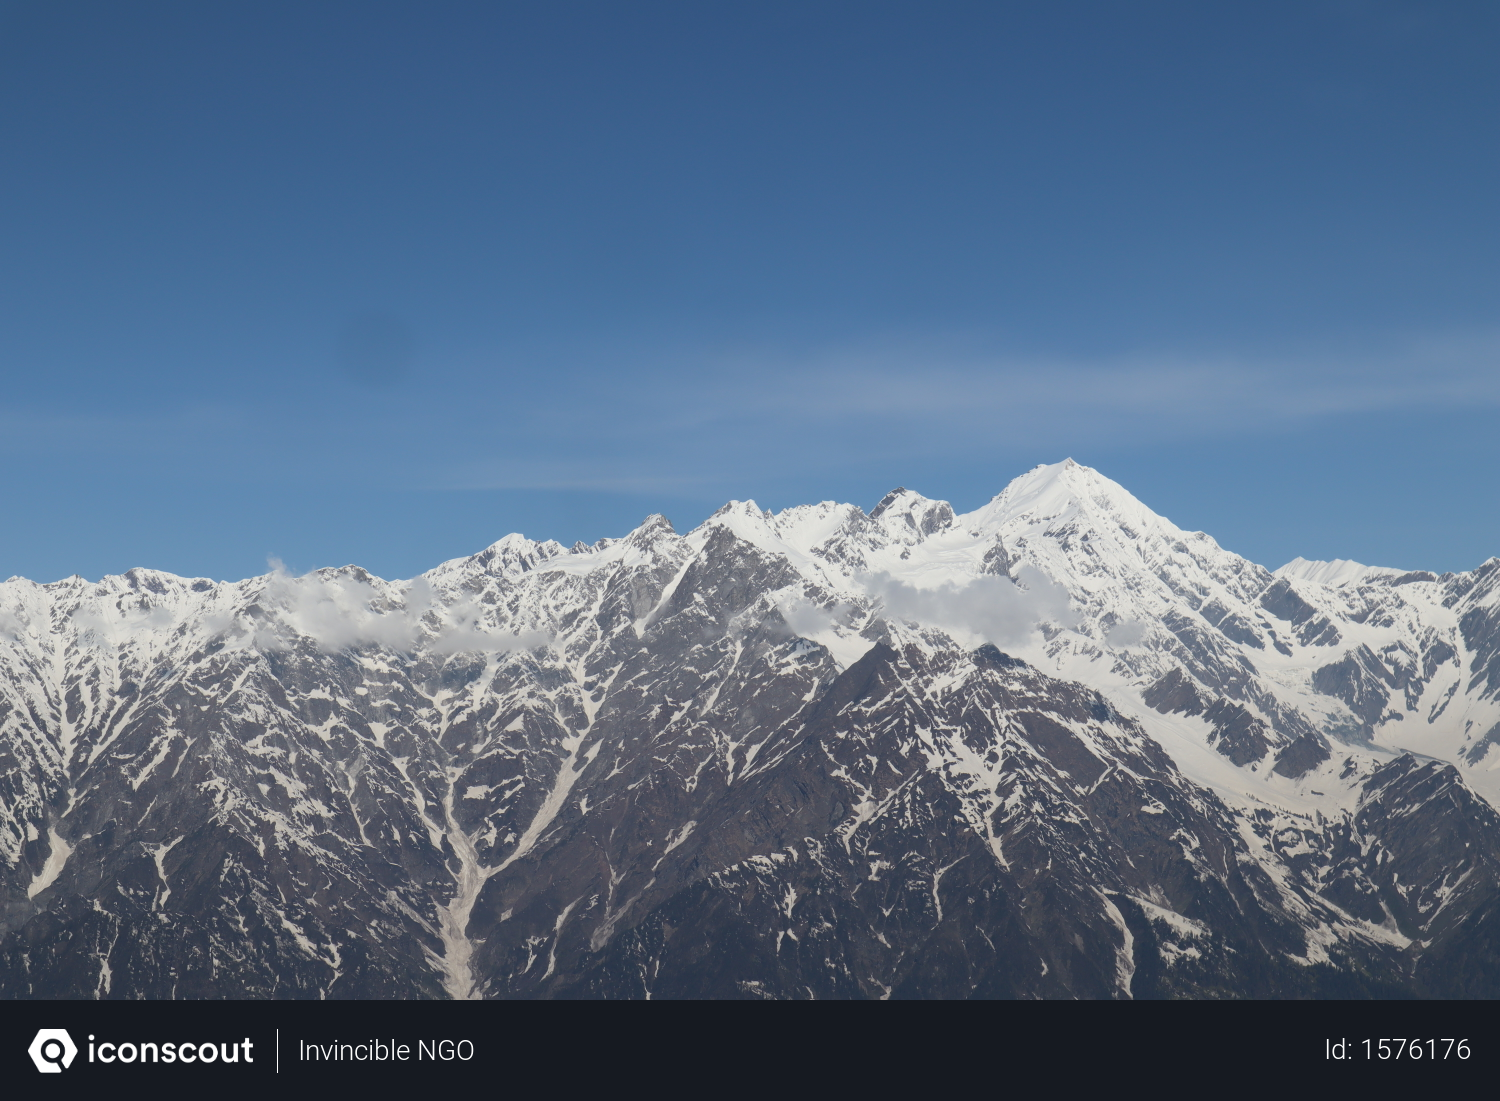 Free Snow Capped Mountain Valley In Himachal Pradesh Photo Download In Png Jpg Format Himachal Pradesh Mountain Valley Photo